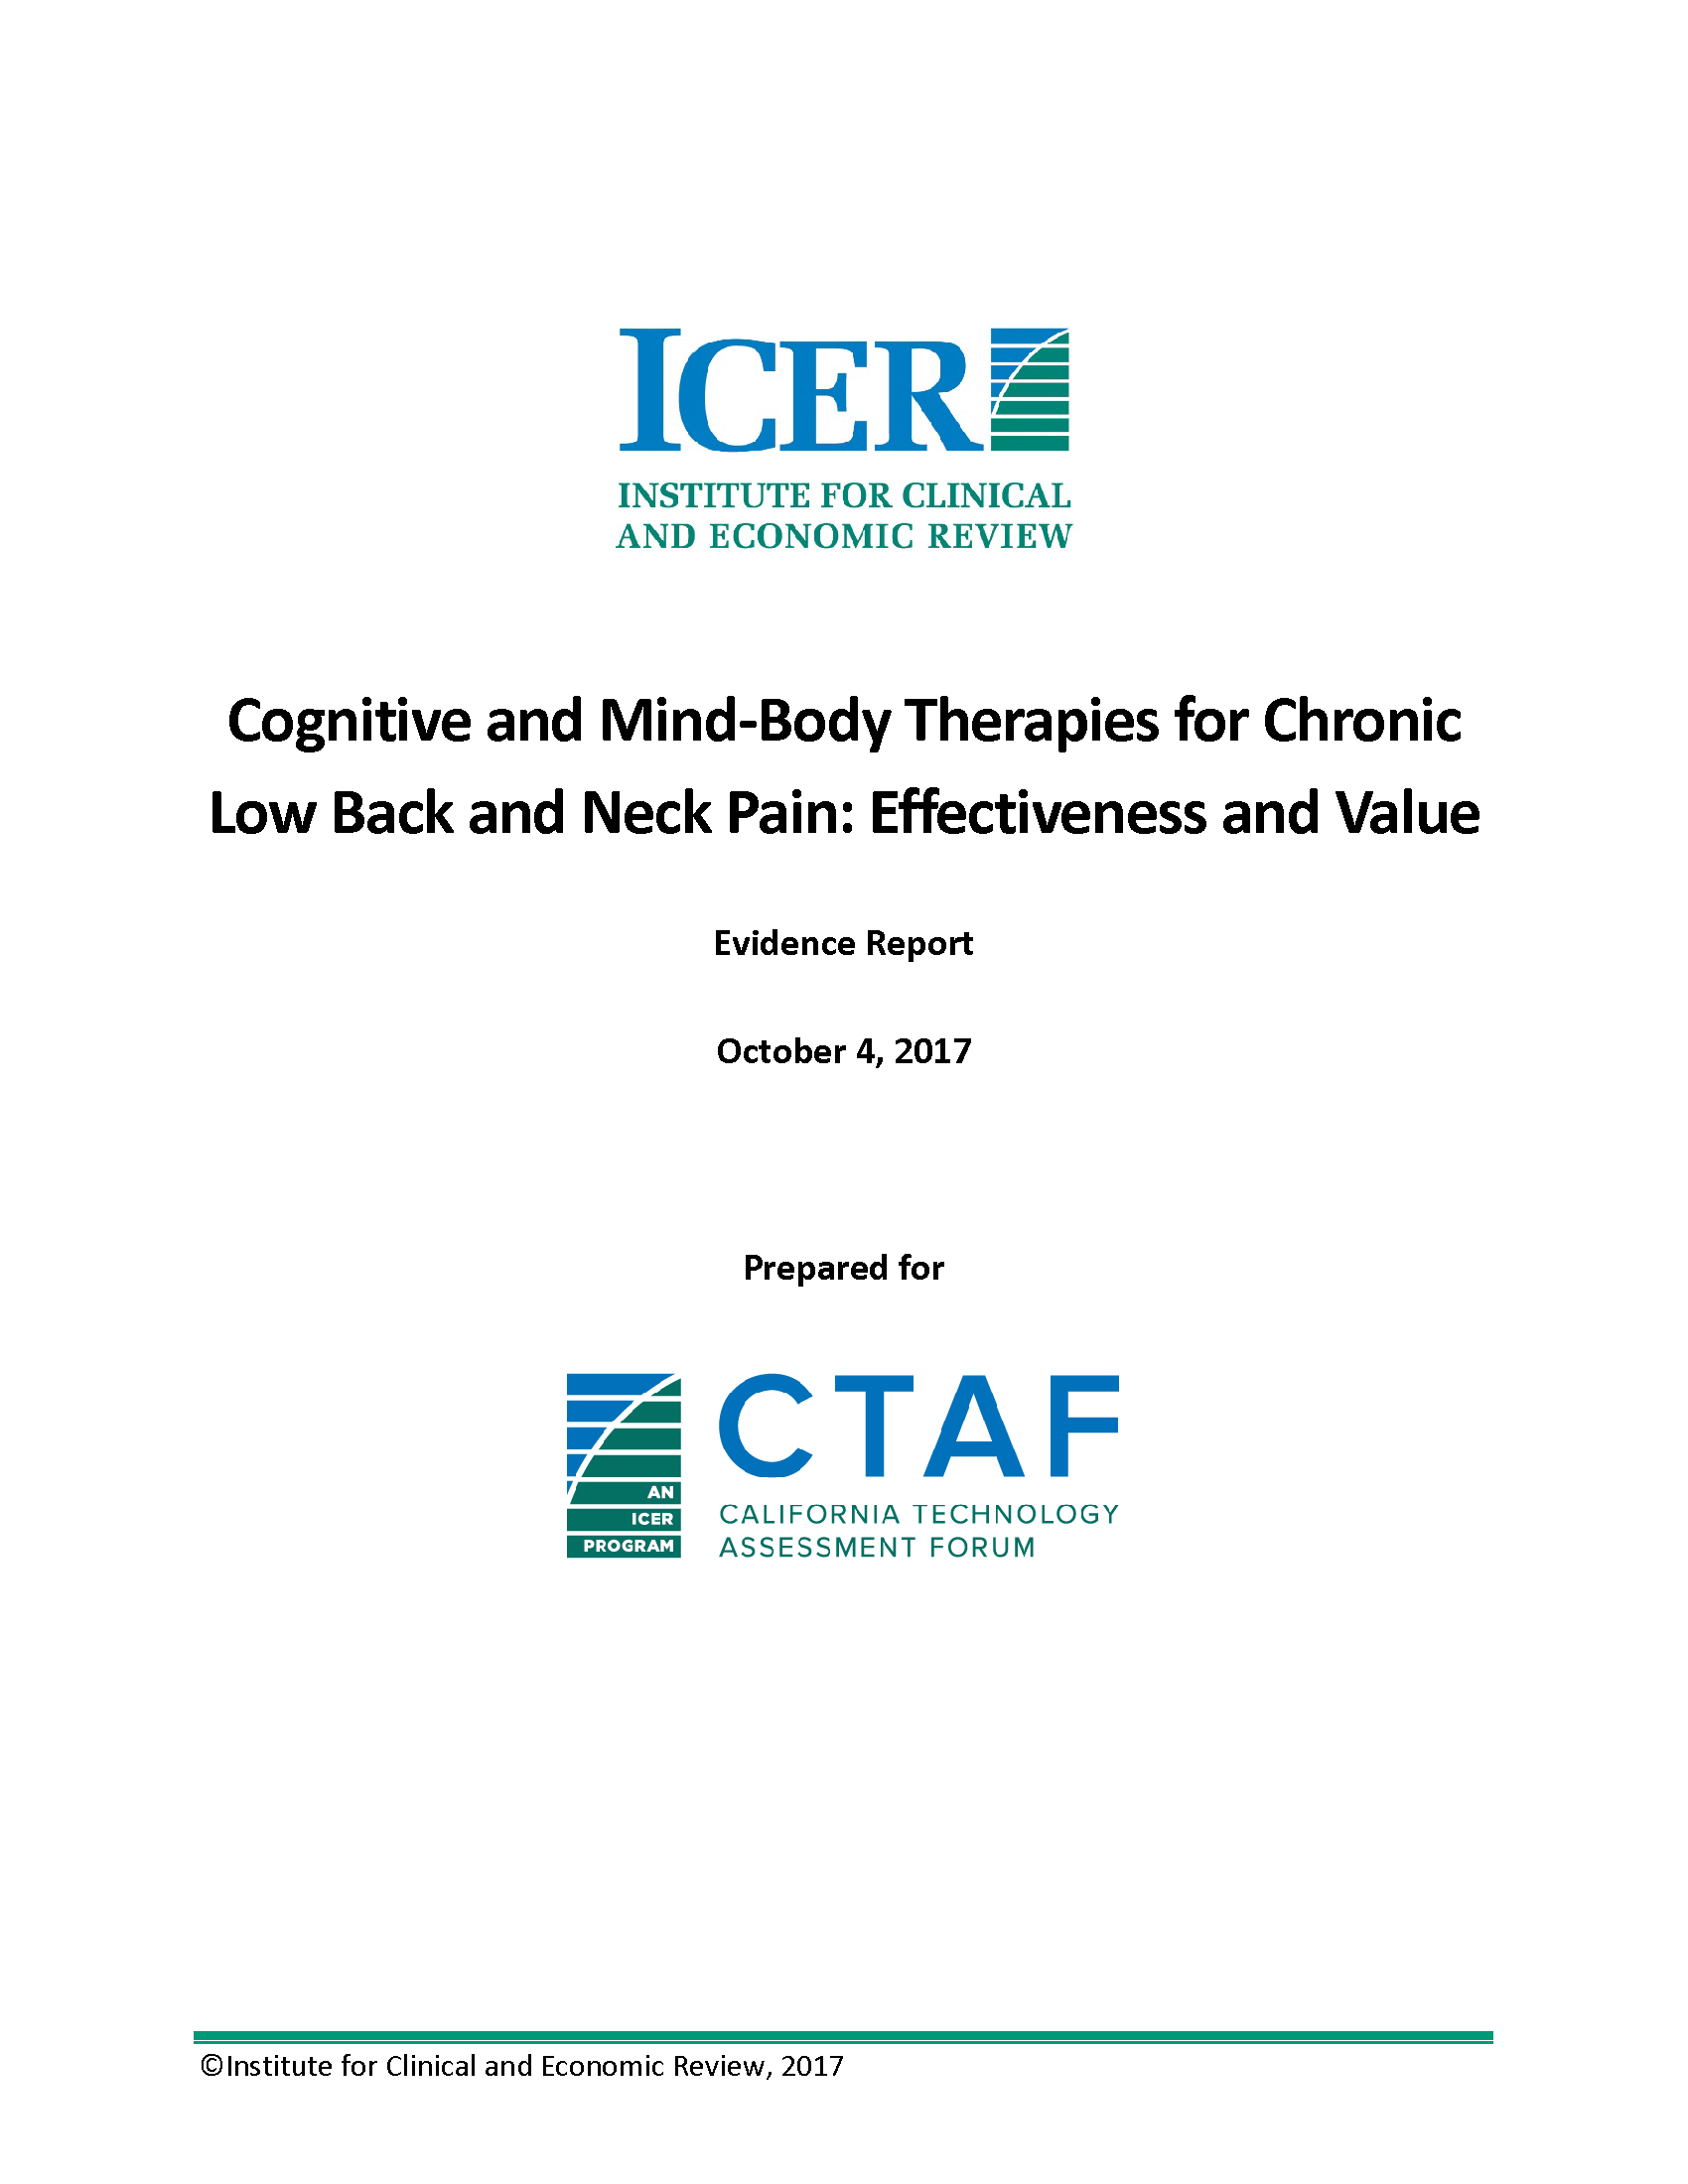 Cognitive and Mind-Body Therapies for Chronic Low Back and Neck Pain: Effectiveness and Value